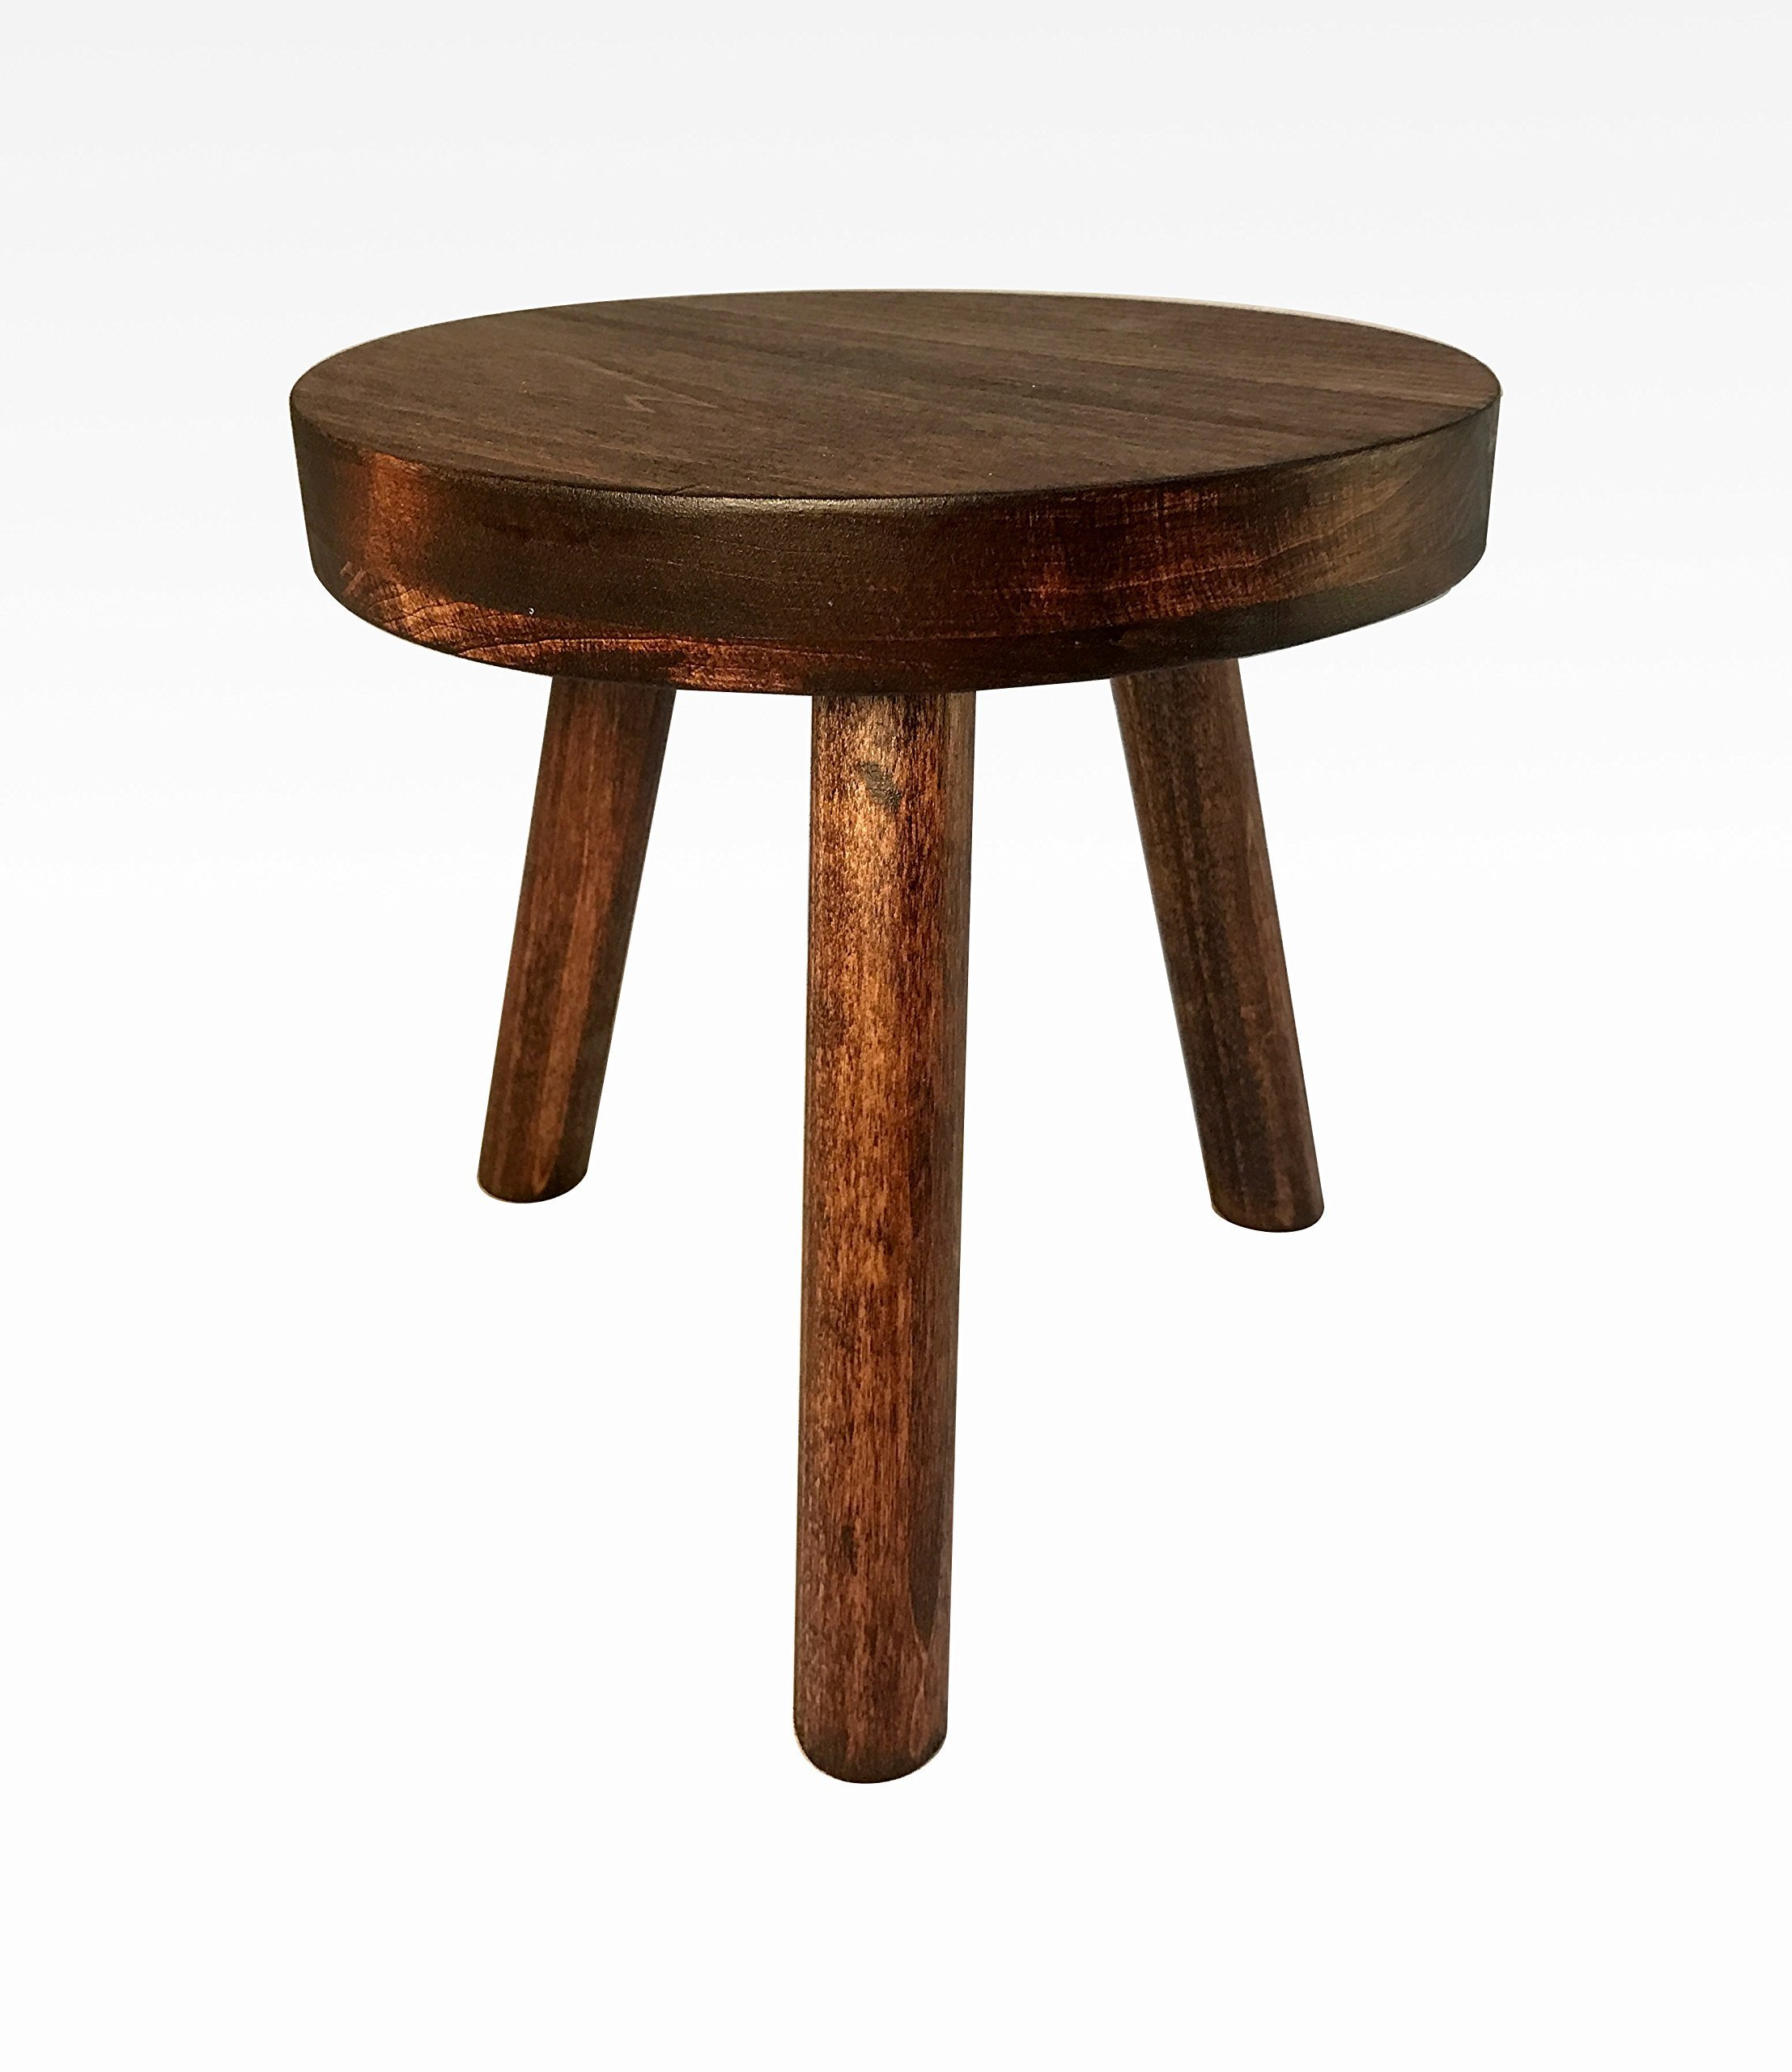 Small Wood Three Legged Stool, Modern Plant Stand, Choose Finish by Candlewood Furniture, Wooden, Tea Table, Kids Chair, Decorative